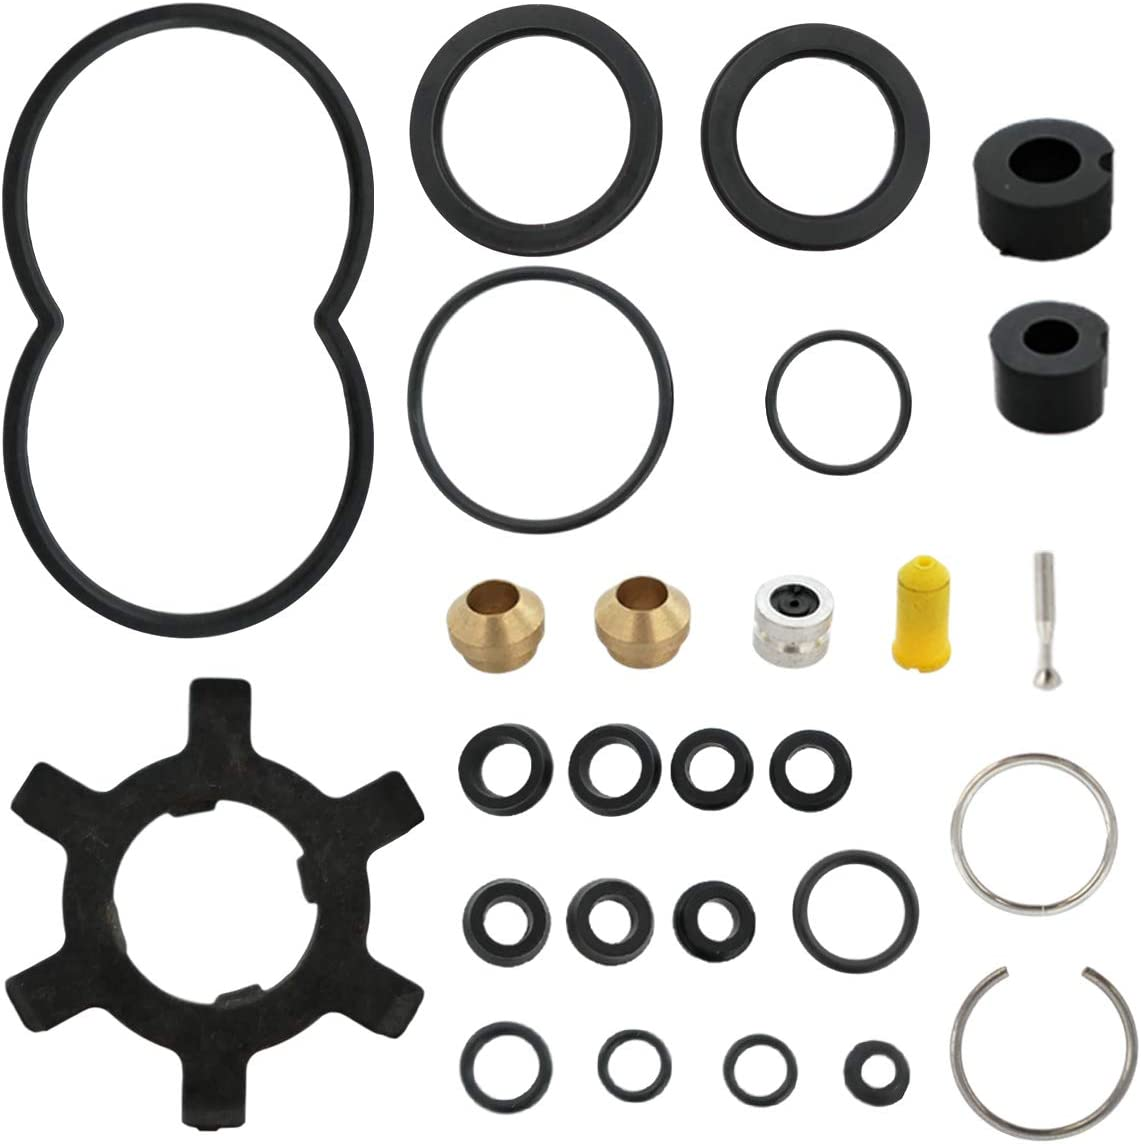 Hydro-Boost Seal Leak Repair Kit Super Special SALE held Fit for Low price GM Ford Chevro Chrysler